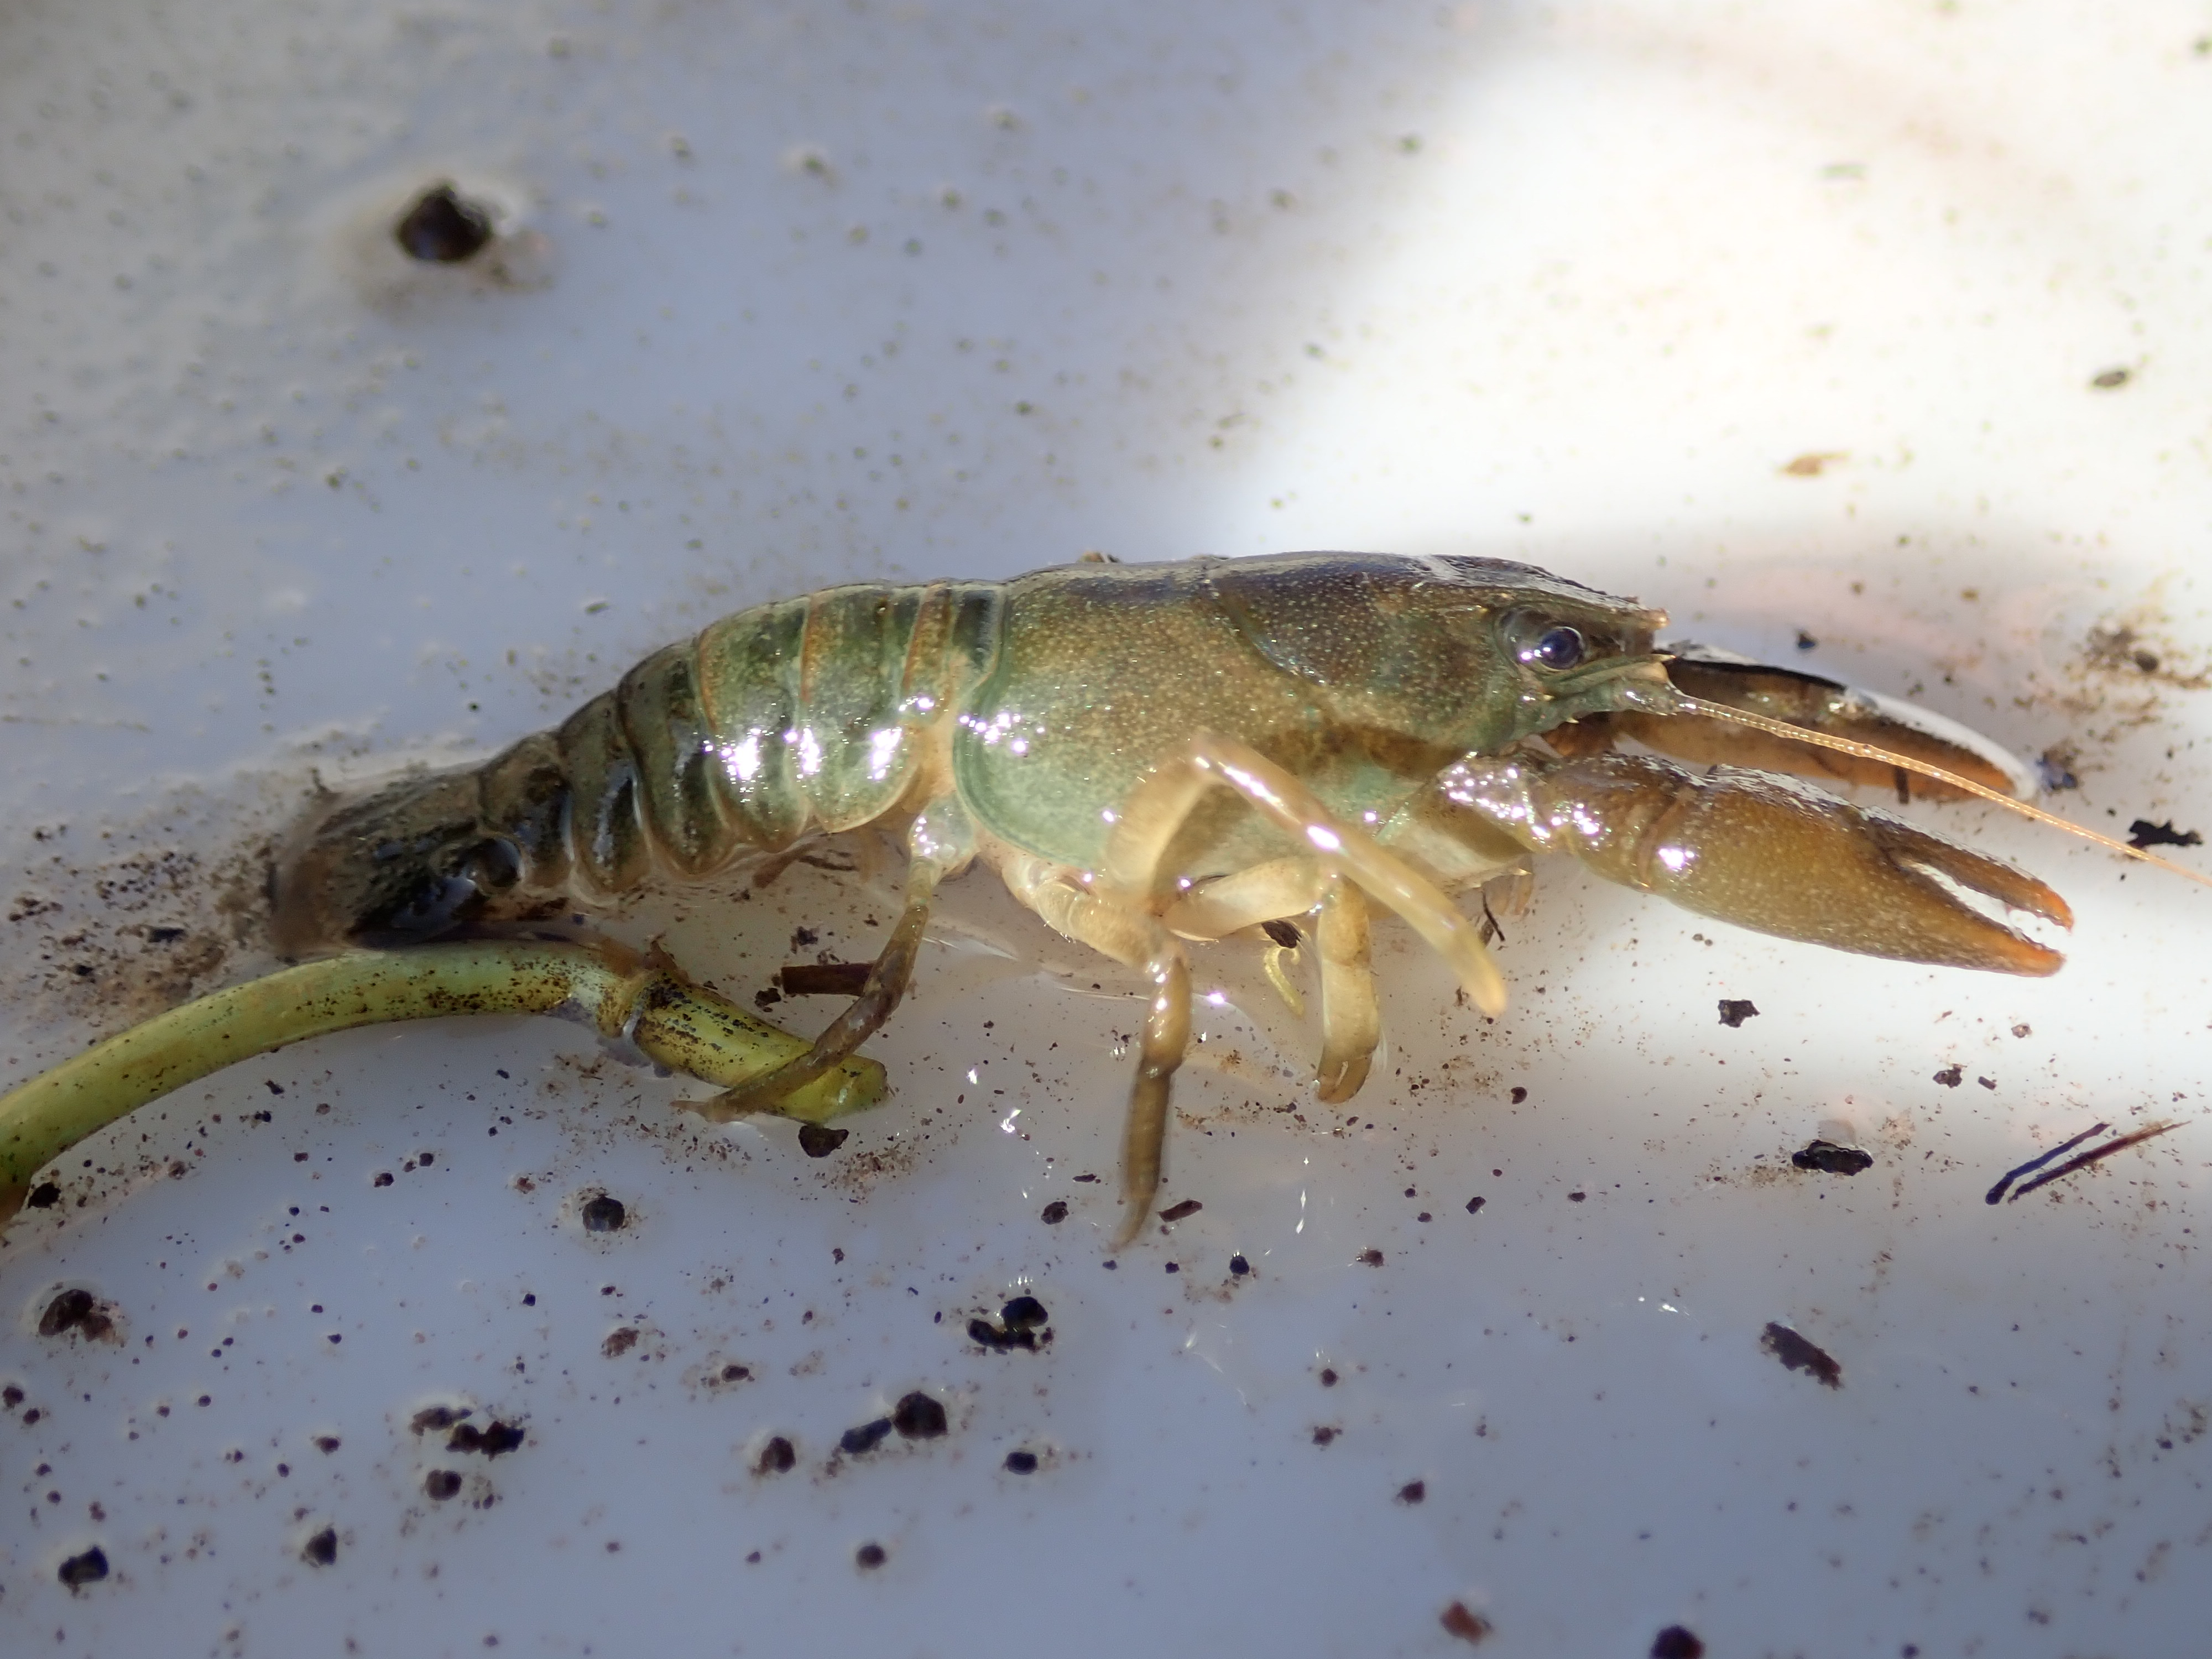 A young adult crayfish with a soft shell having just moulted